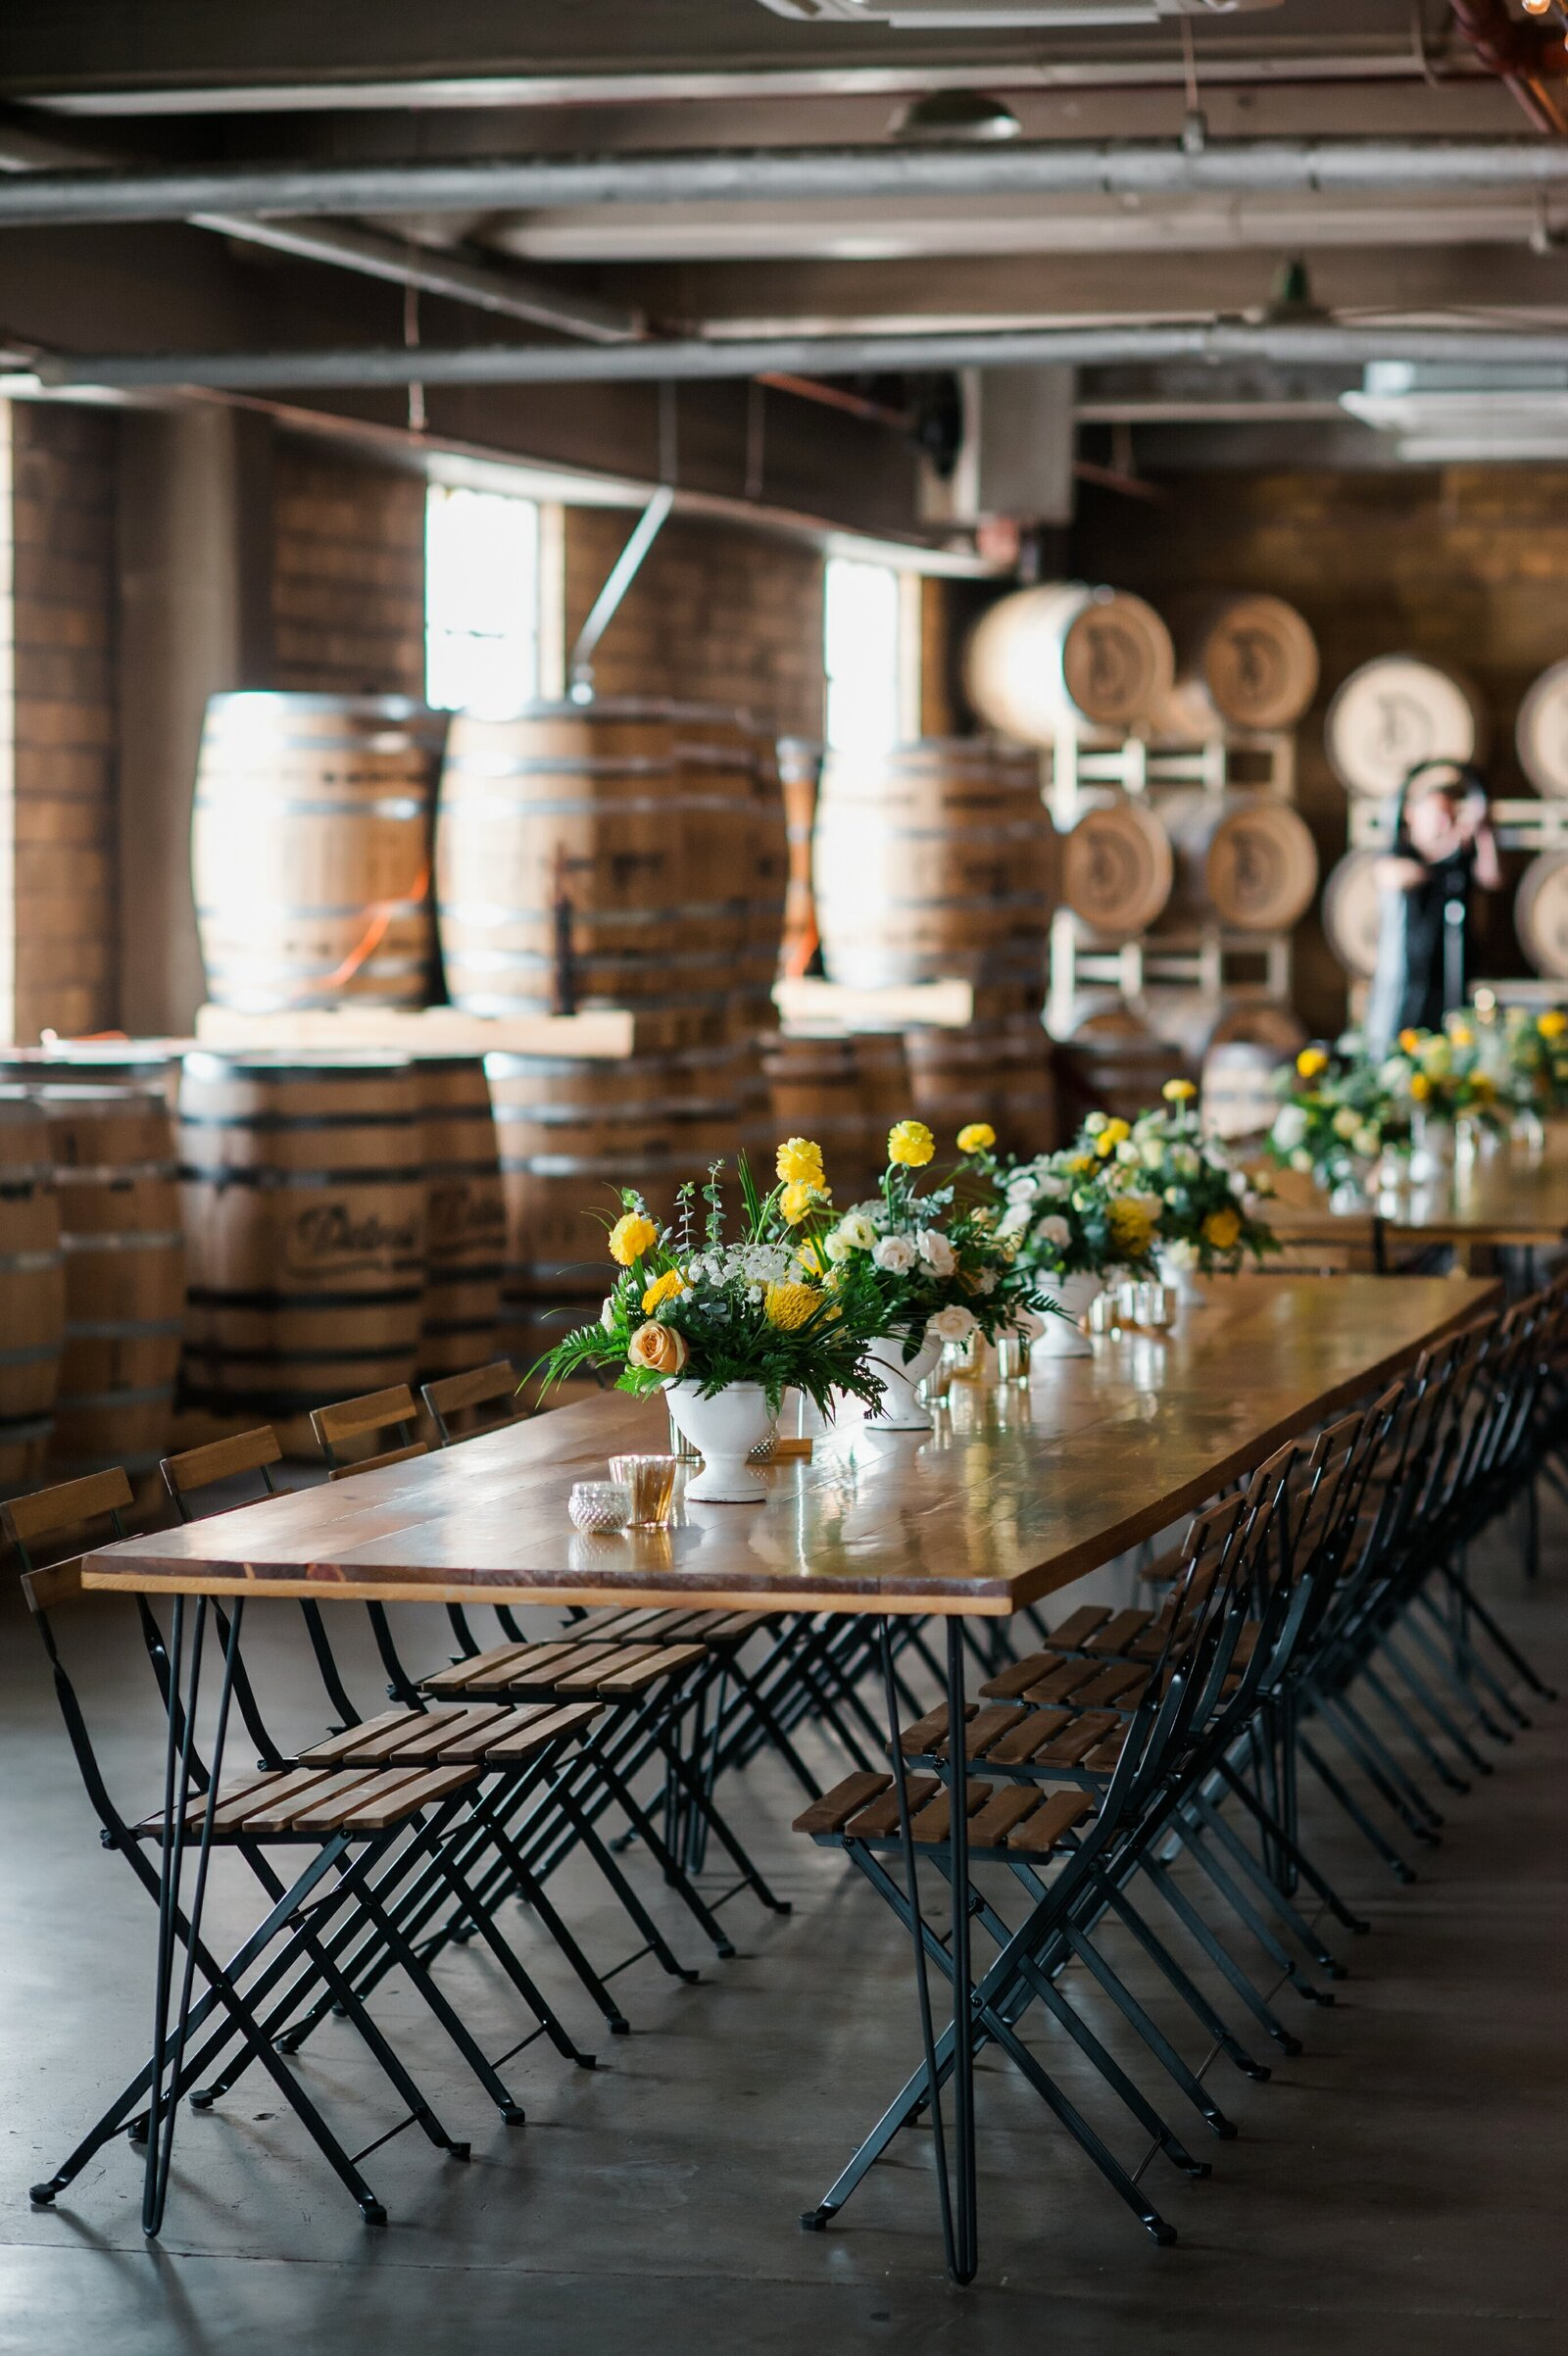 Whiskey Factory Wedding, Whiskey Factory Wedding Photos, Whiskey Factory Wedding photographers, Detroit Wedding Photographers, Detroit Wedding1